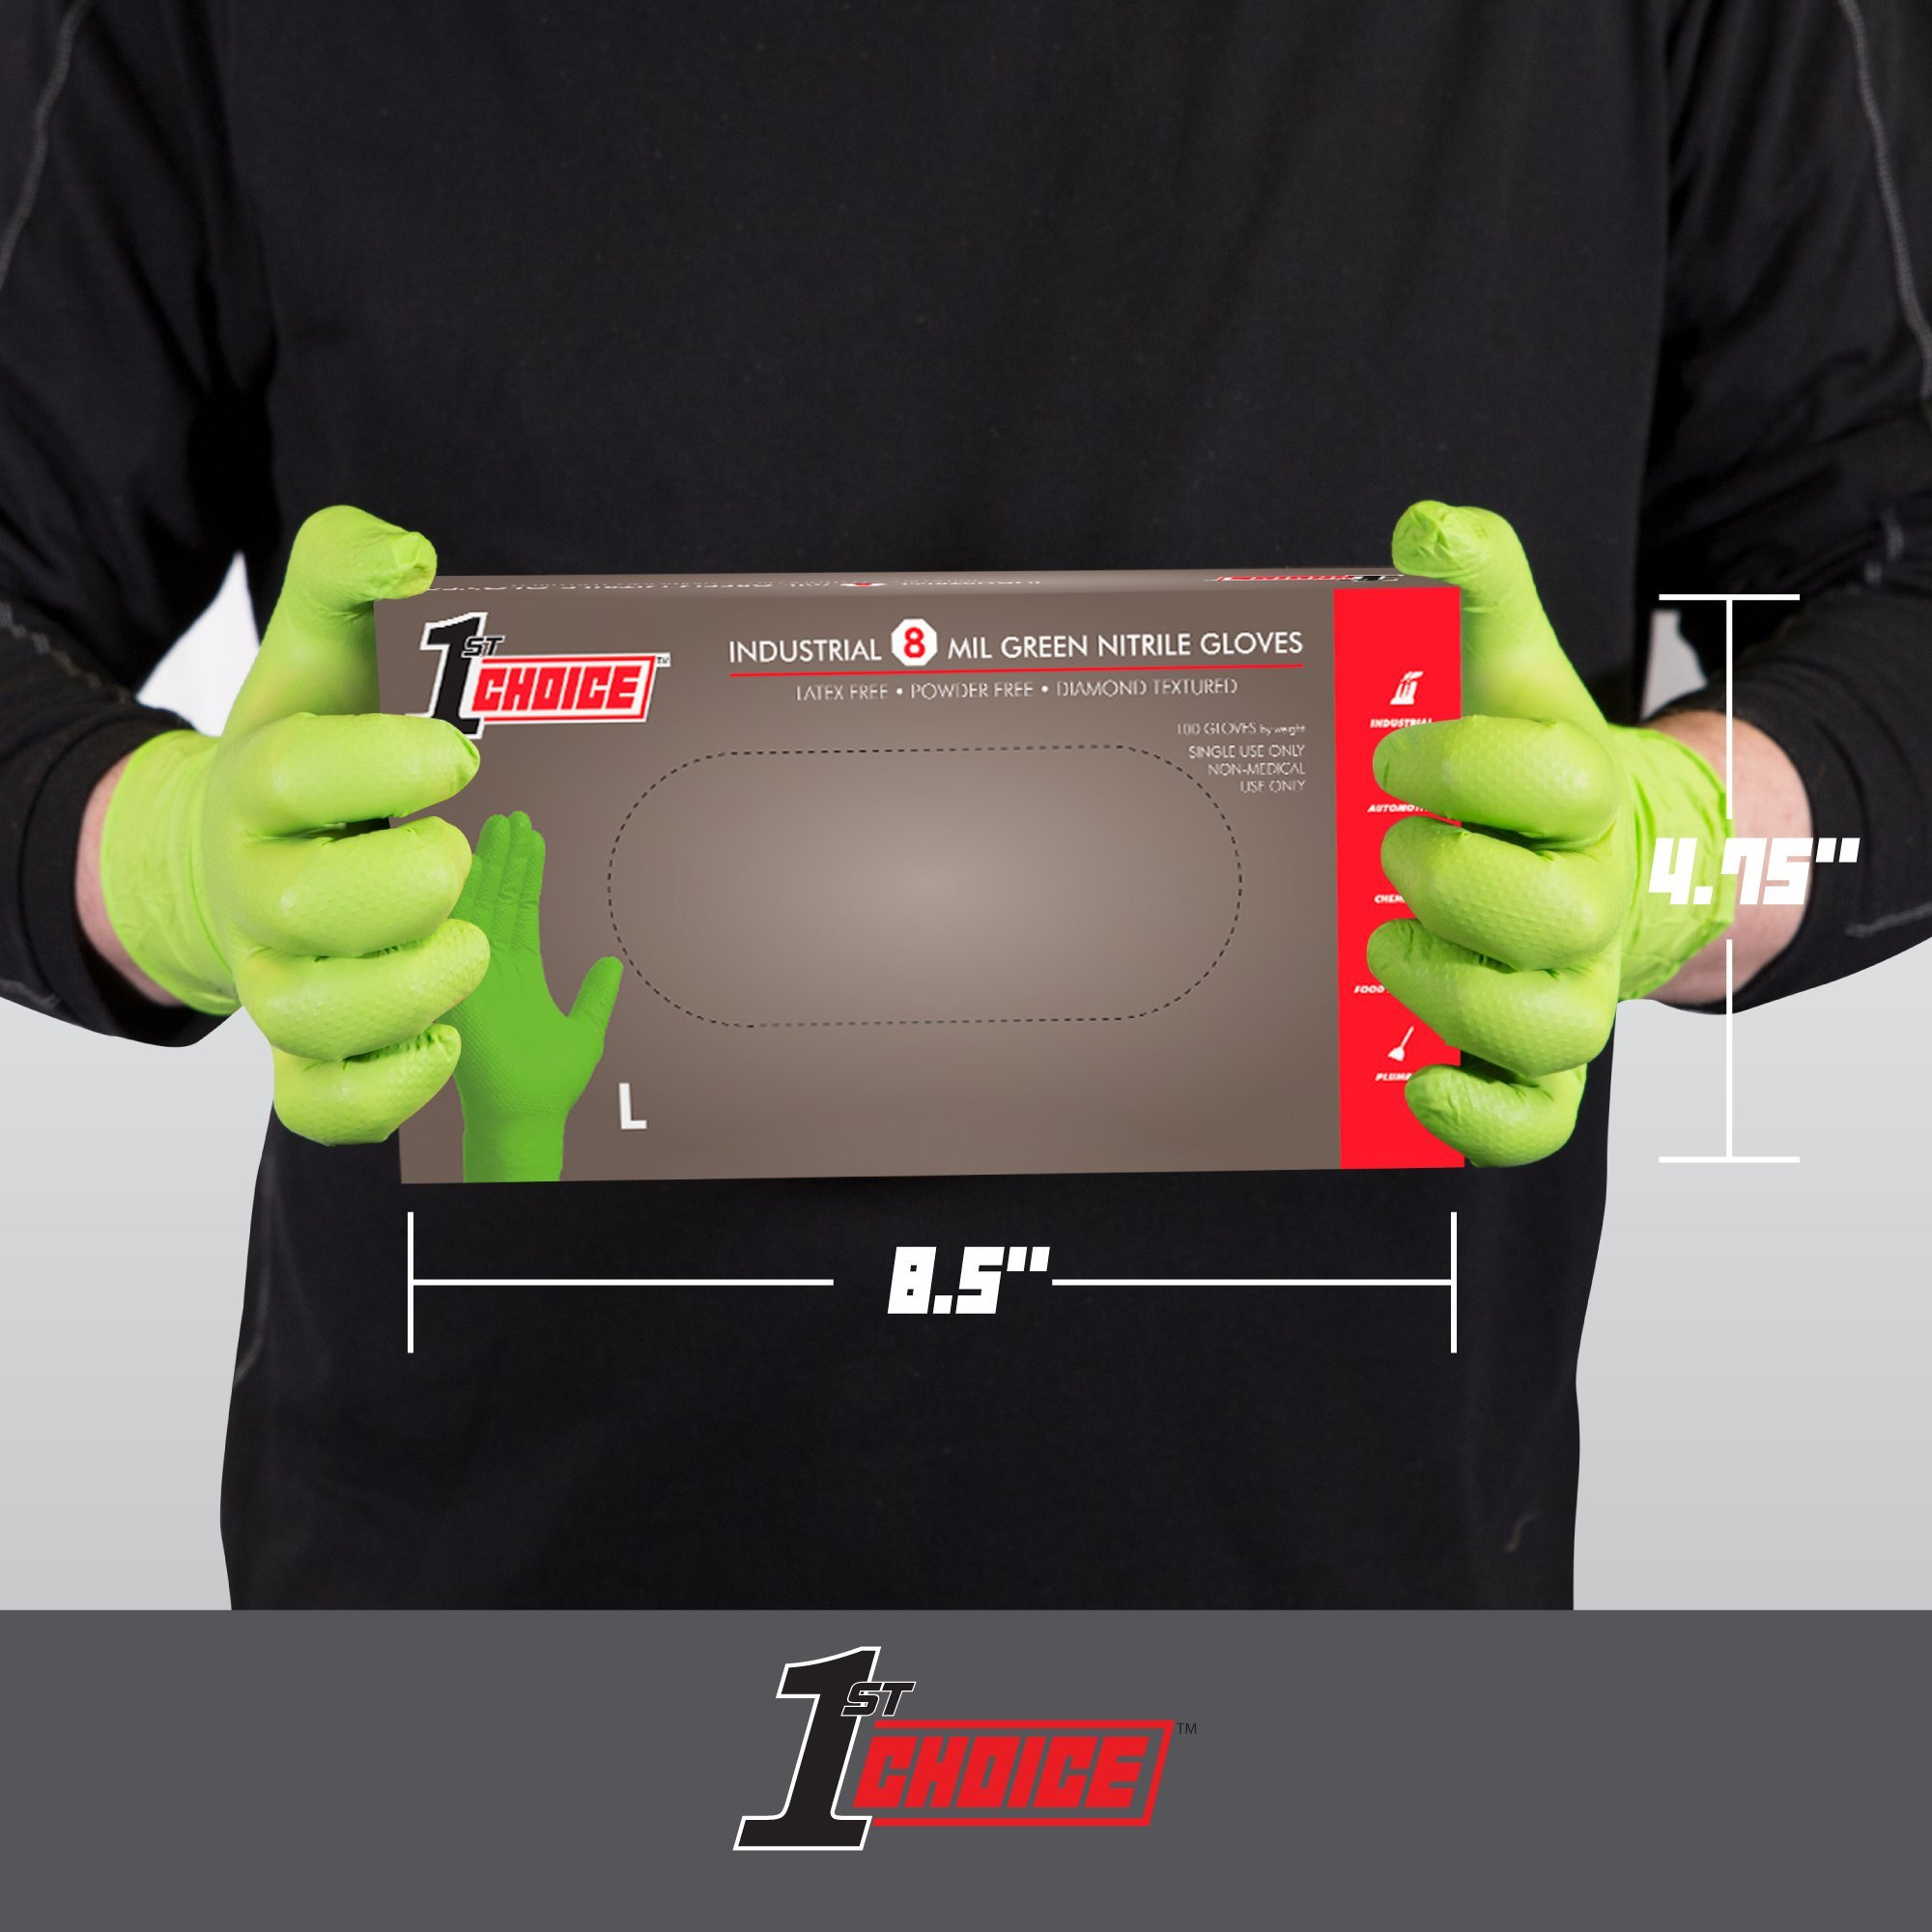 1st Choice Industrial 8 Mil Green Nitrile Gloves - Latex Free, Powder Free, Non-Sterile, Large, Case of 400